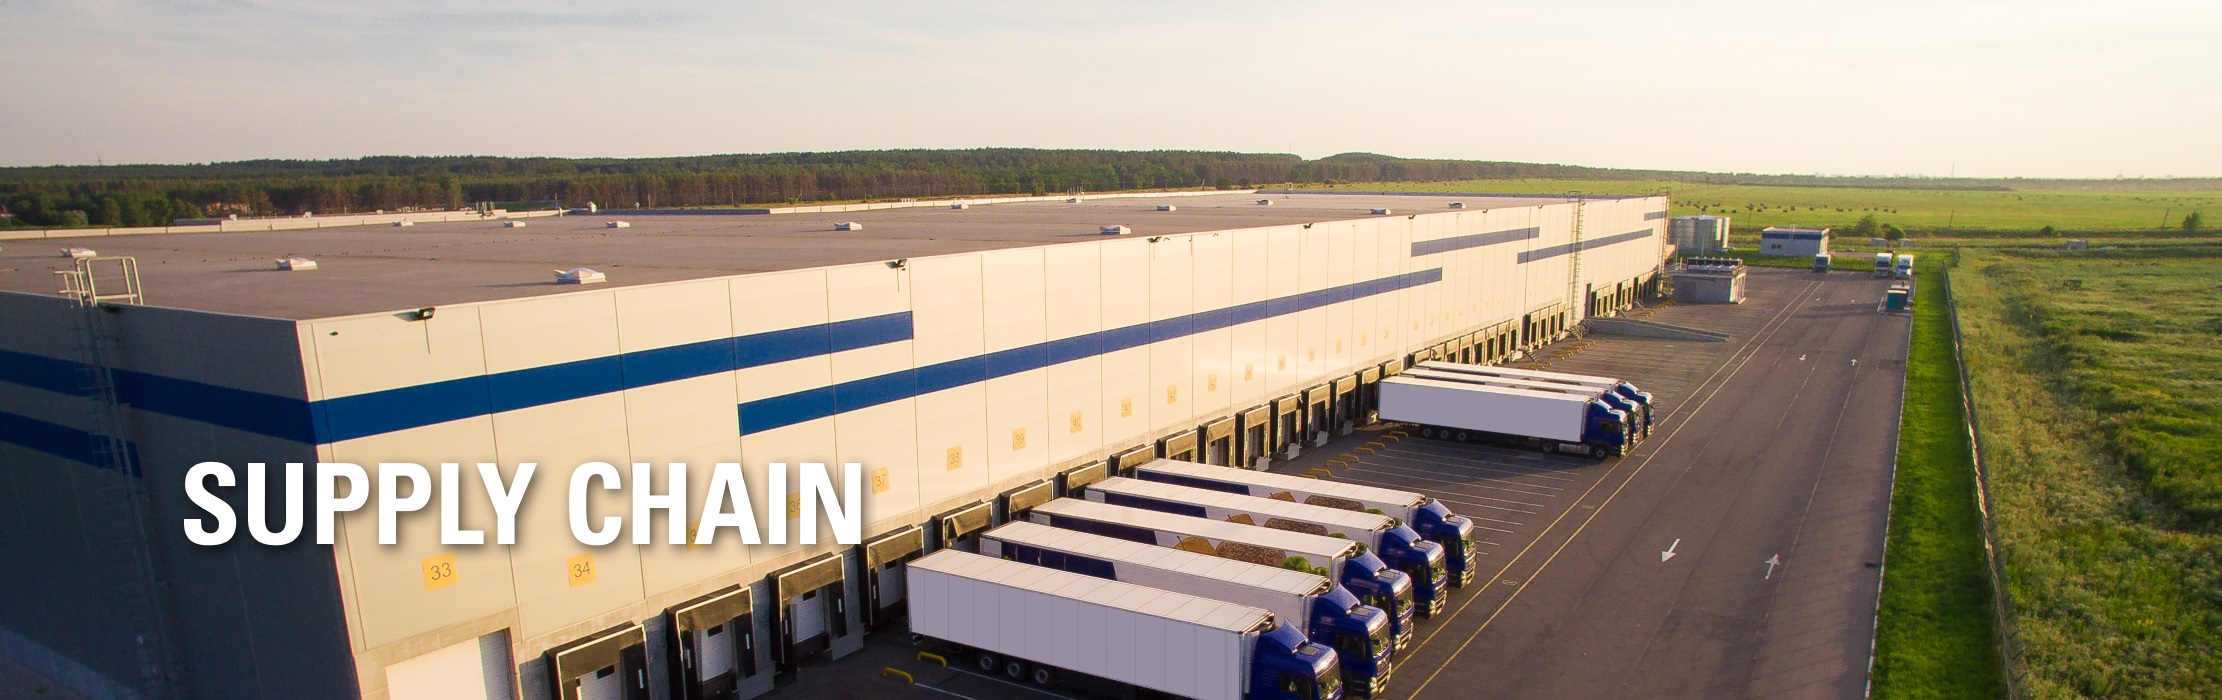 Trucks loading and unloading at a warehouse: Supply Chain.